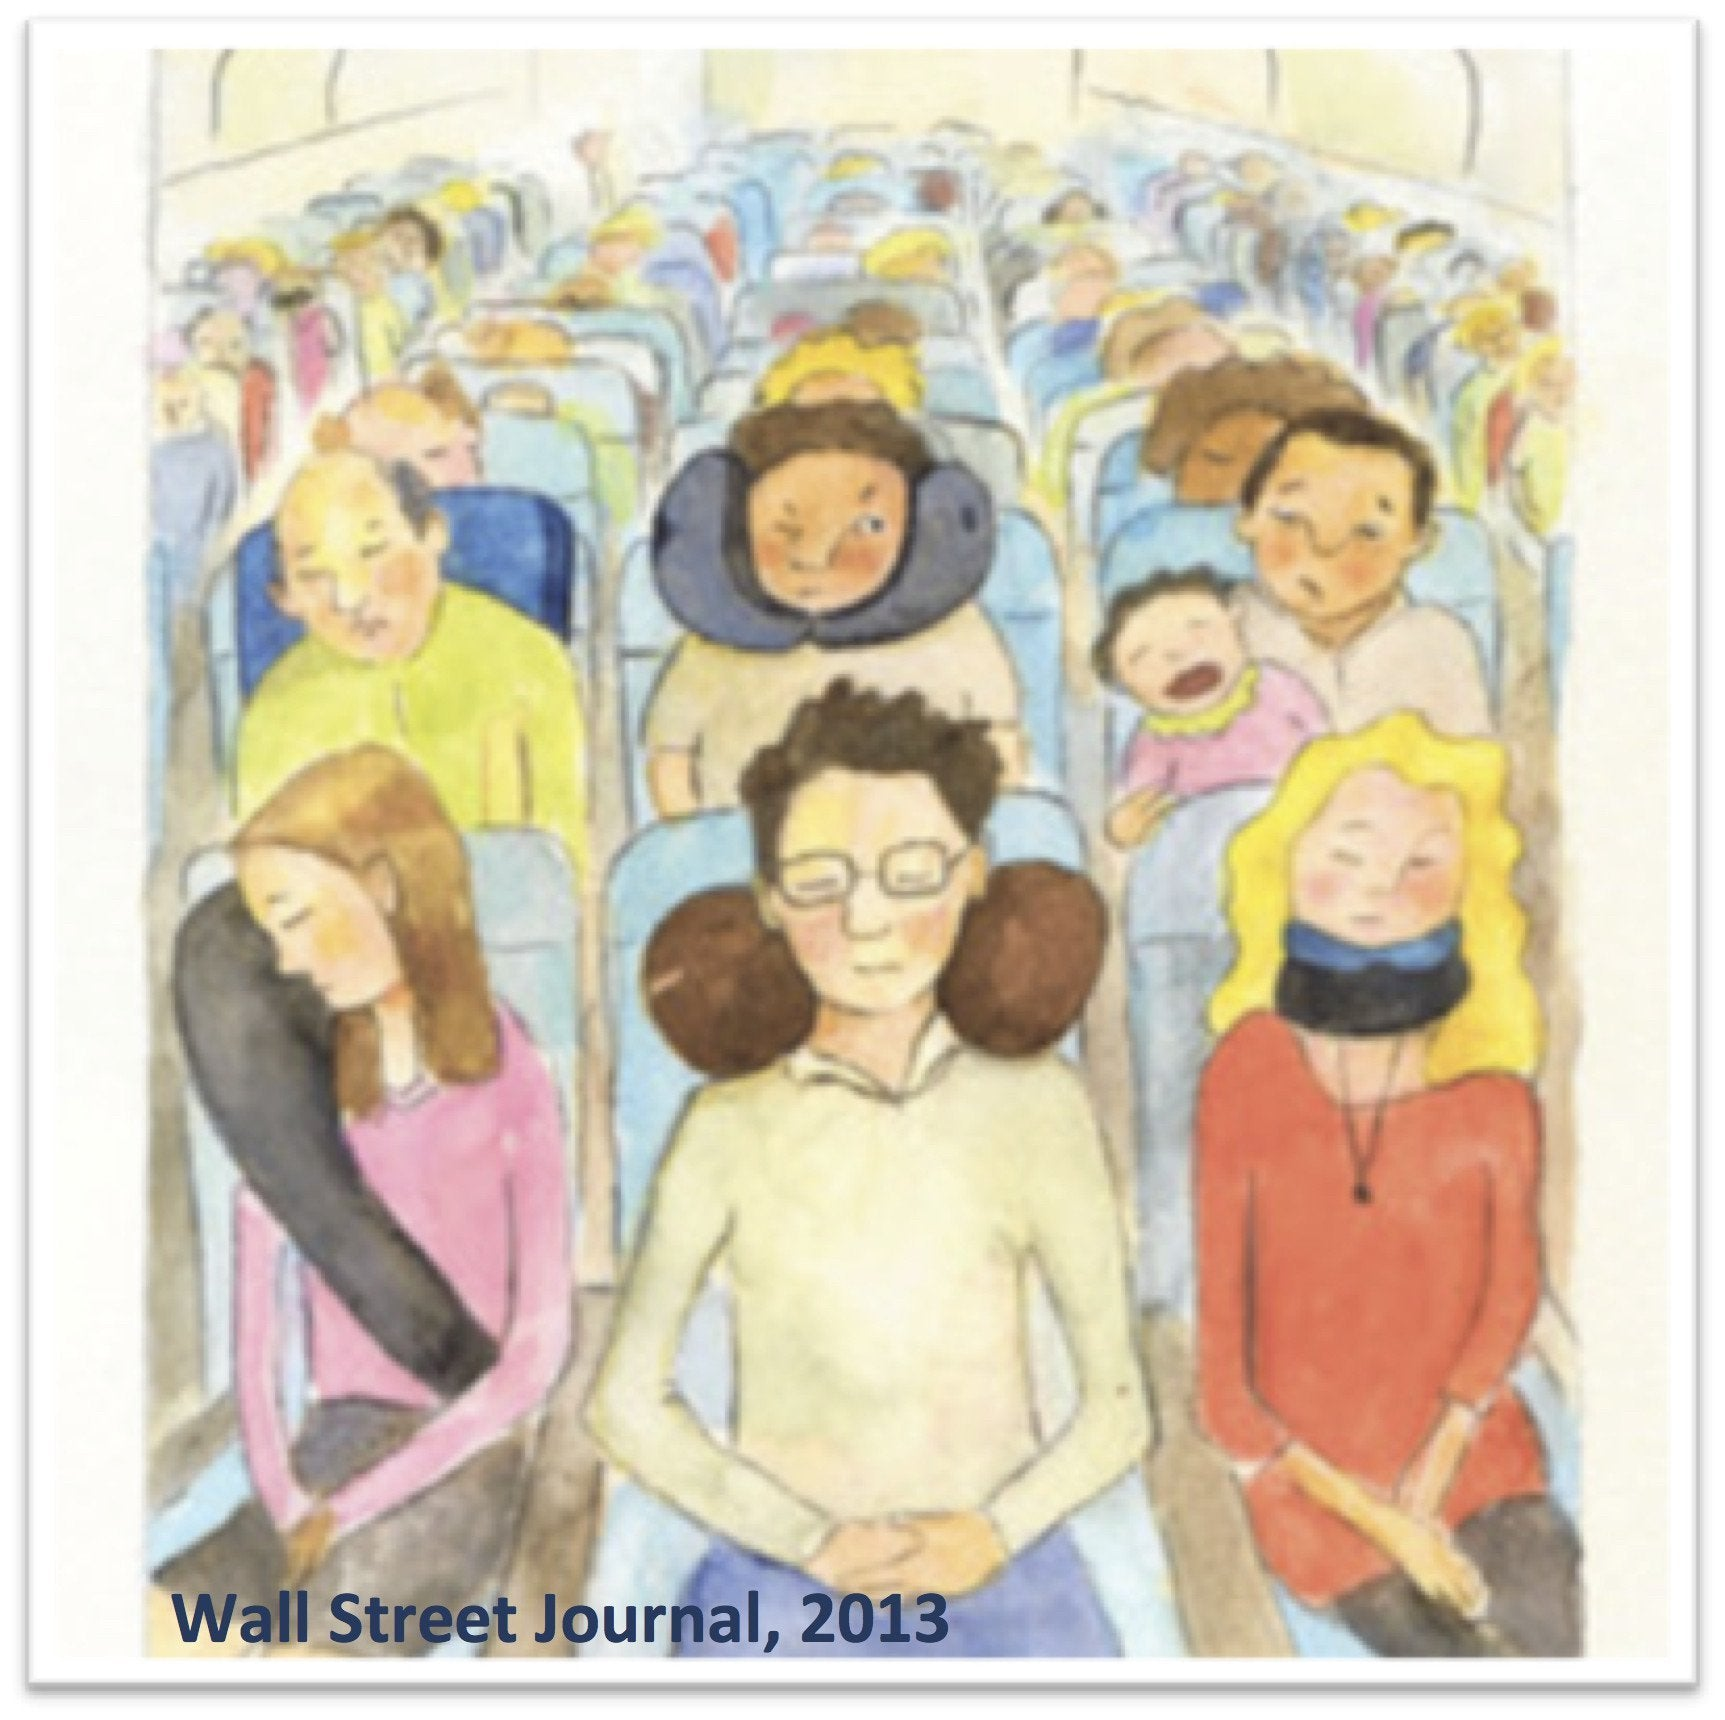 An illustration of passengers on an airplane using a variety of travel pillows